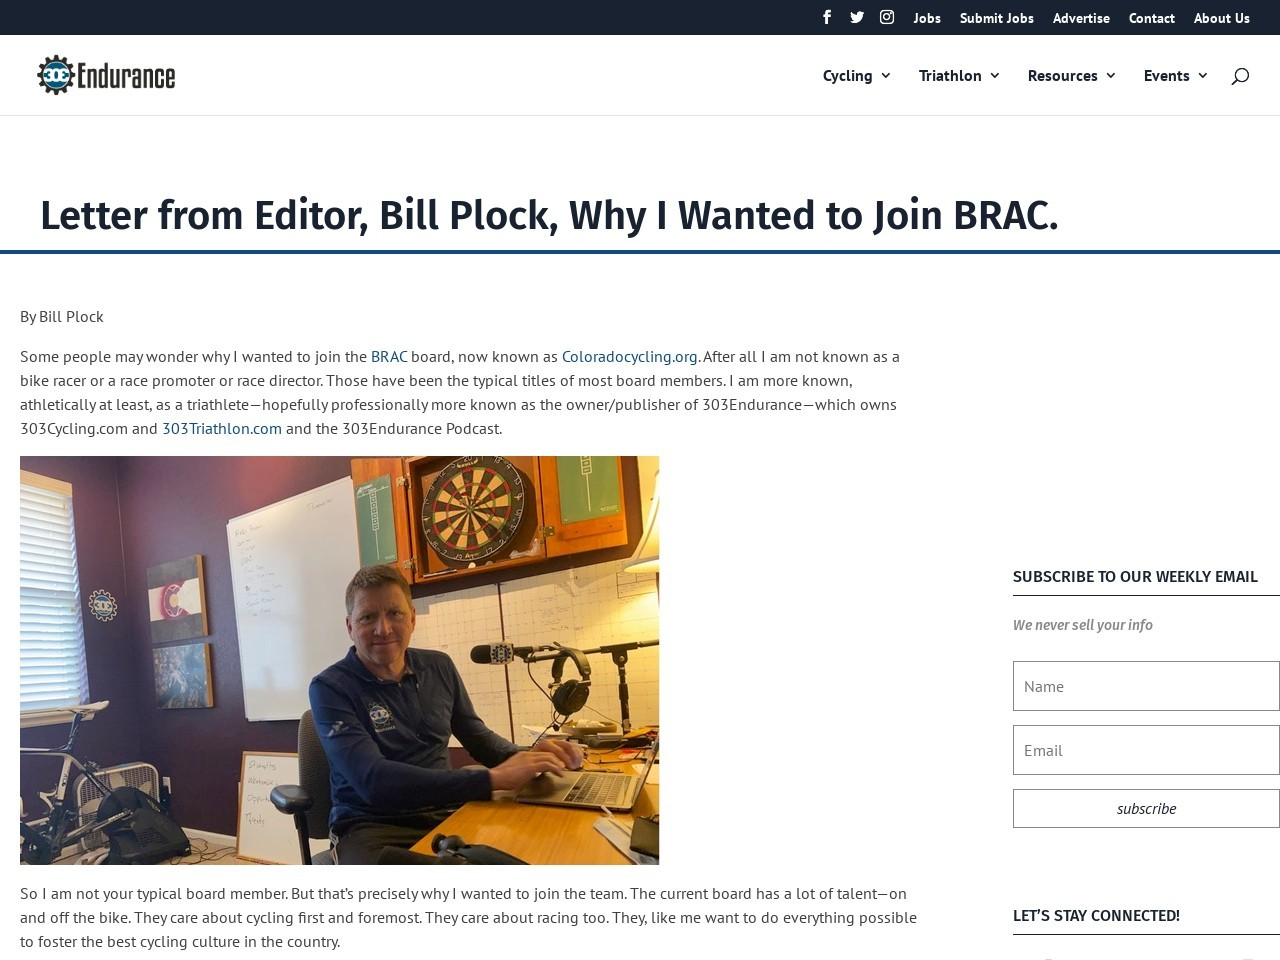 Letter from Editor, Bill Plock, Why I Wanted to Join BRAC.